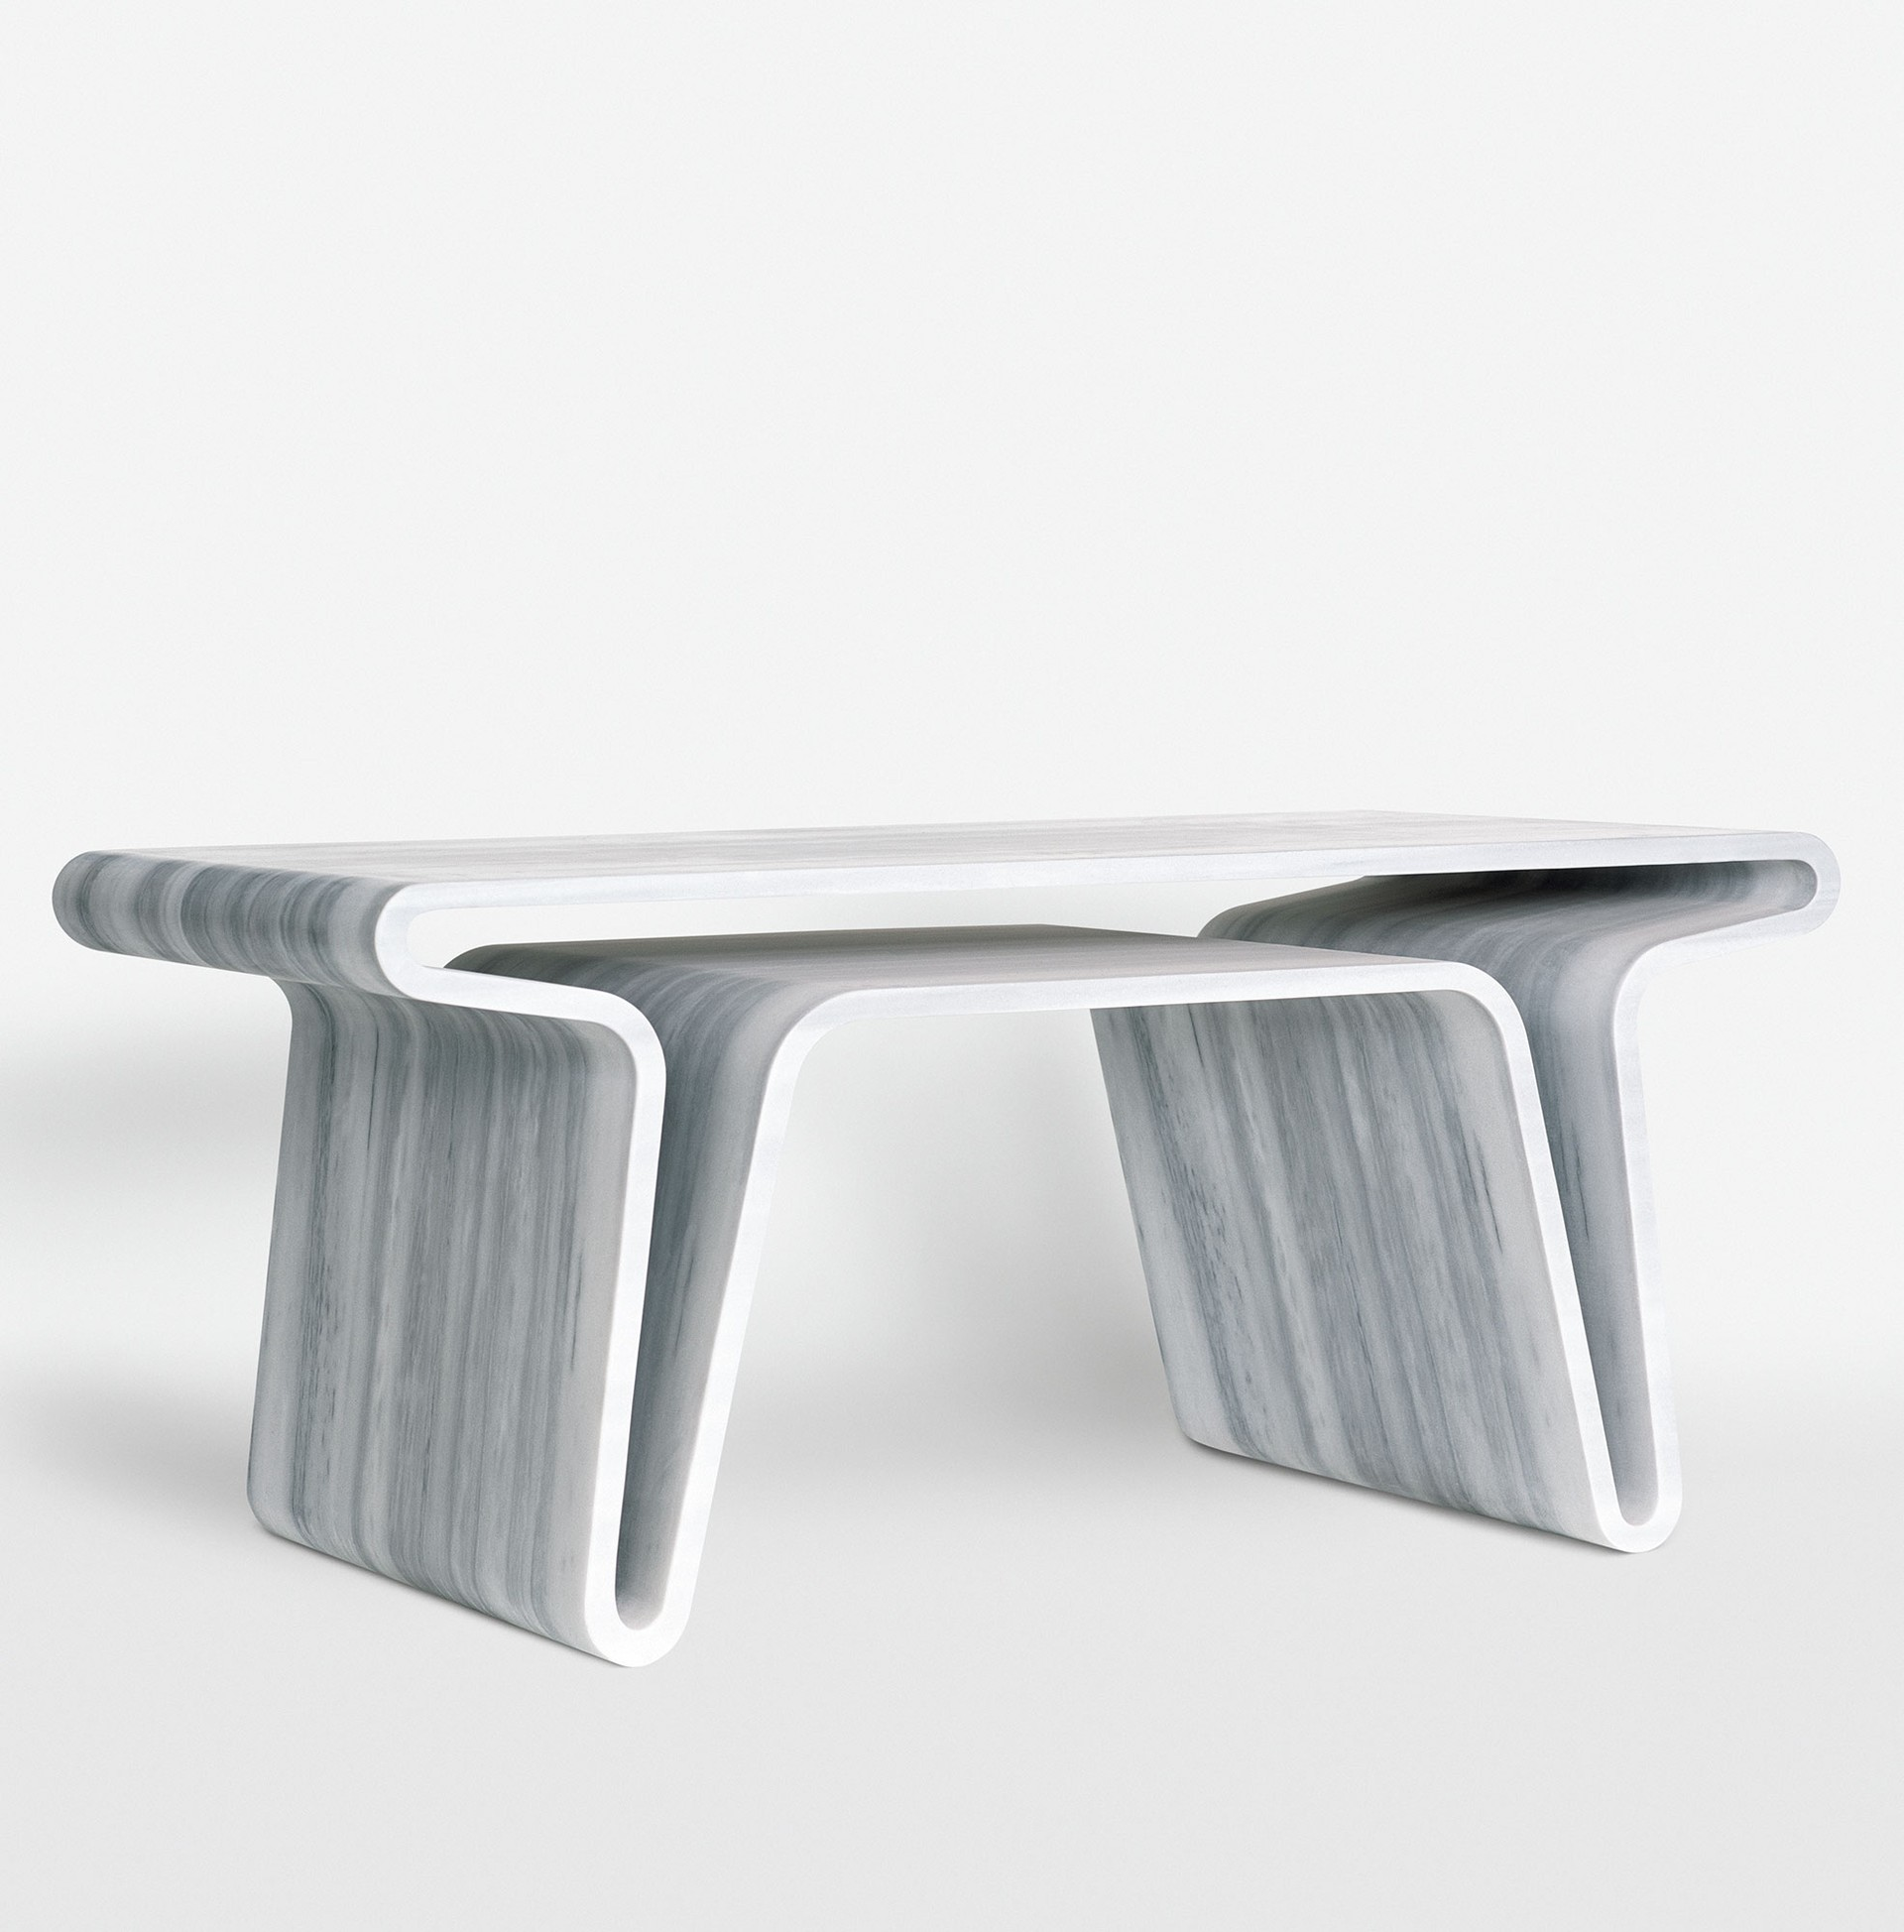 Marc Newson - One of the Best Contemporary Designers in the World - Extruded Table 3 marc newson Marc Newson: One of the Best Contemporary Designers in the World Marc Newson One of the Best Contemporary Designers in the World Extruded Table 3